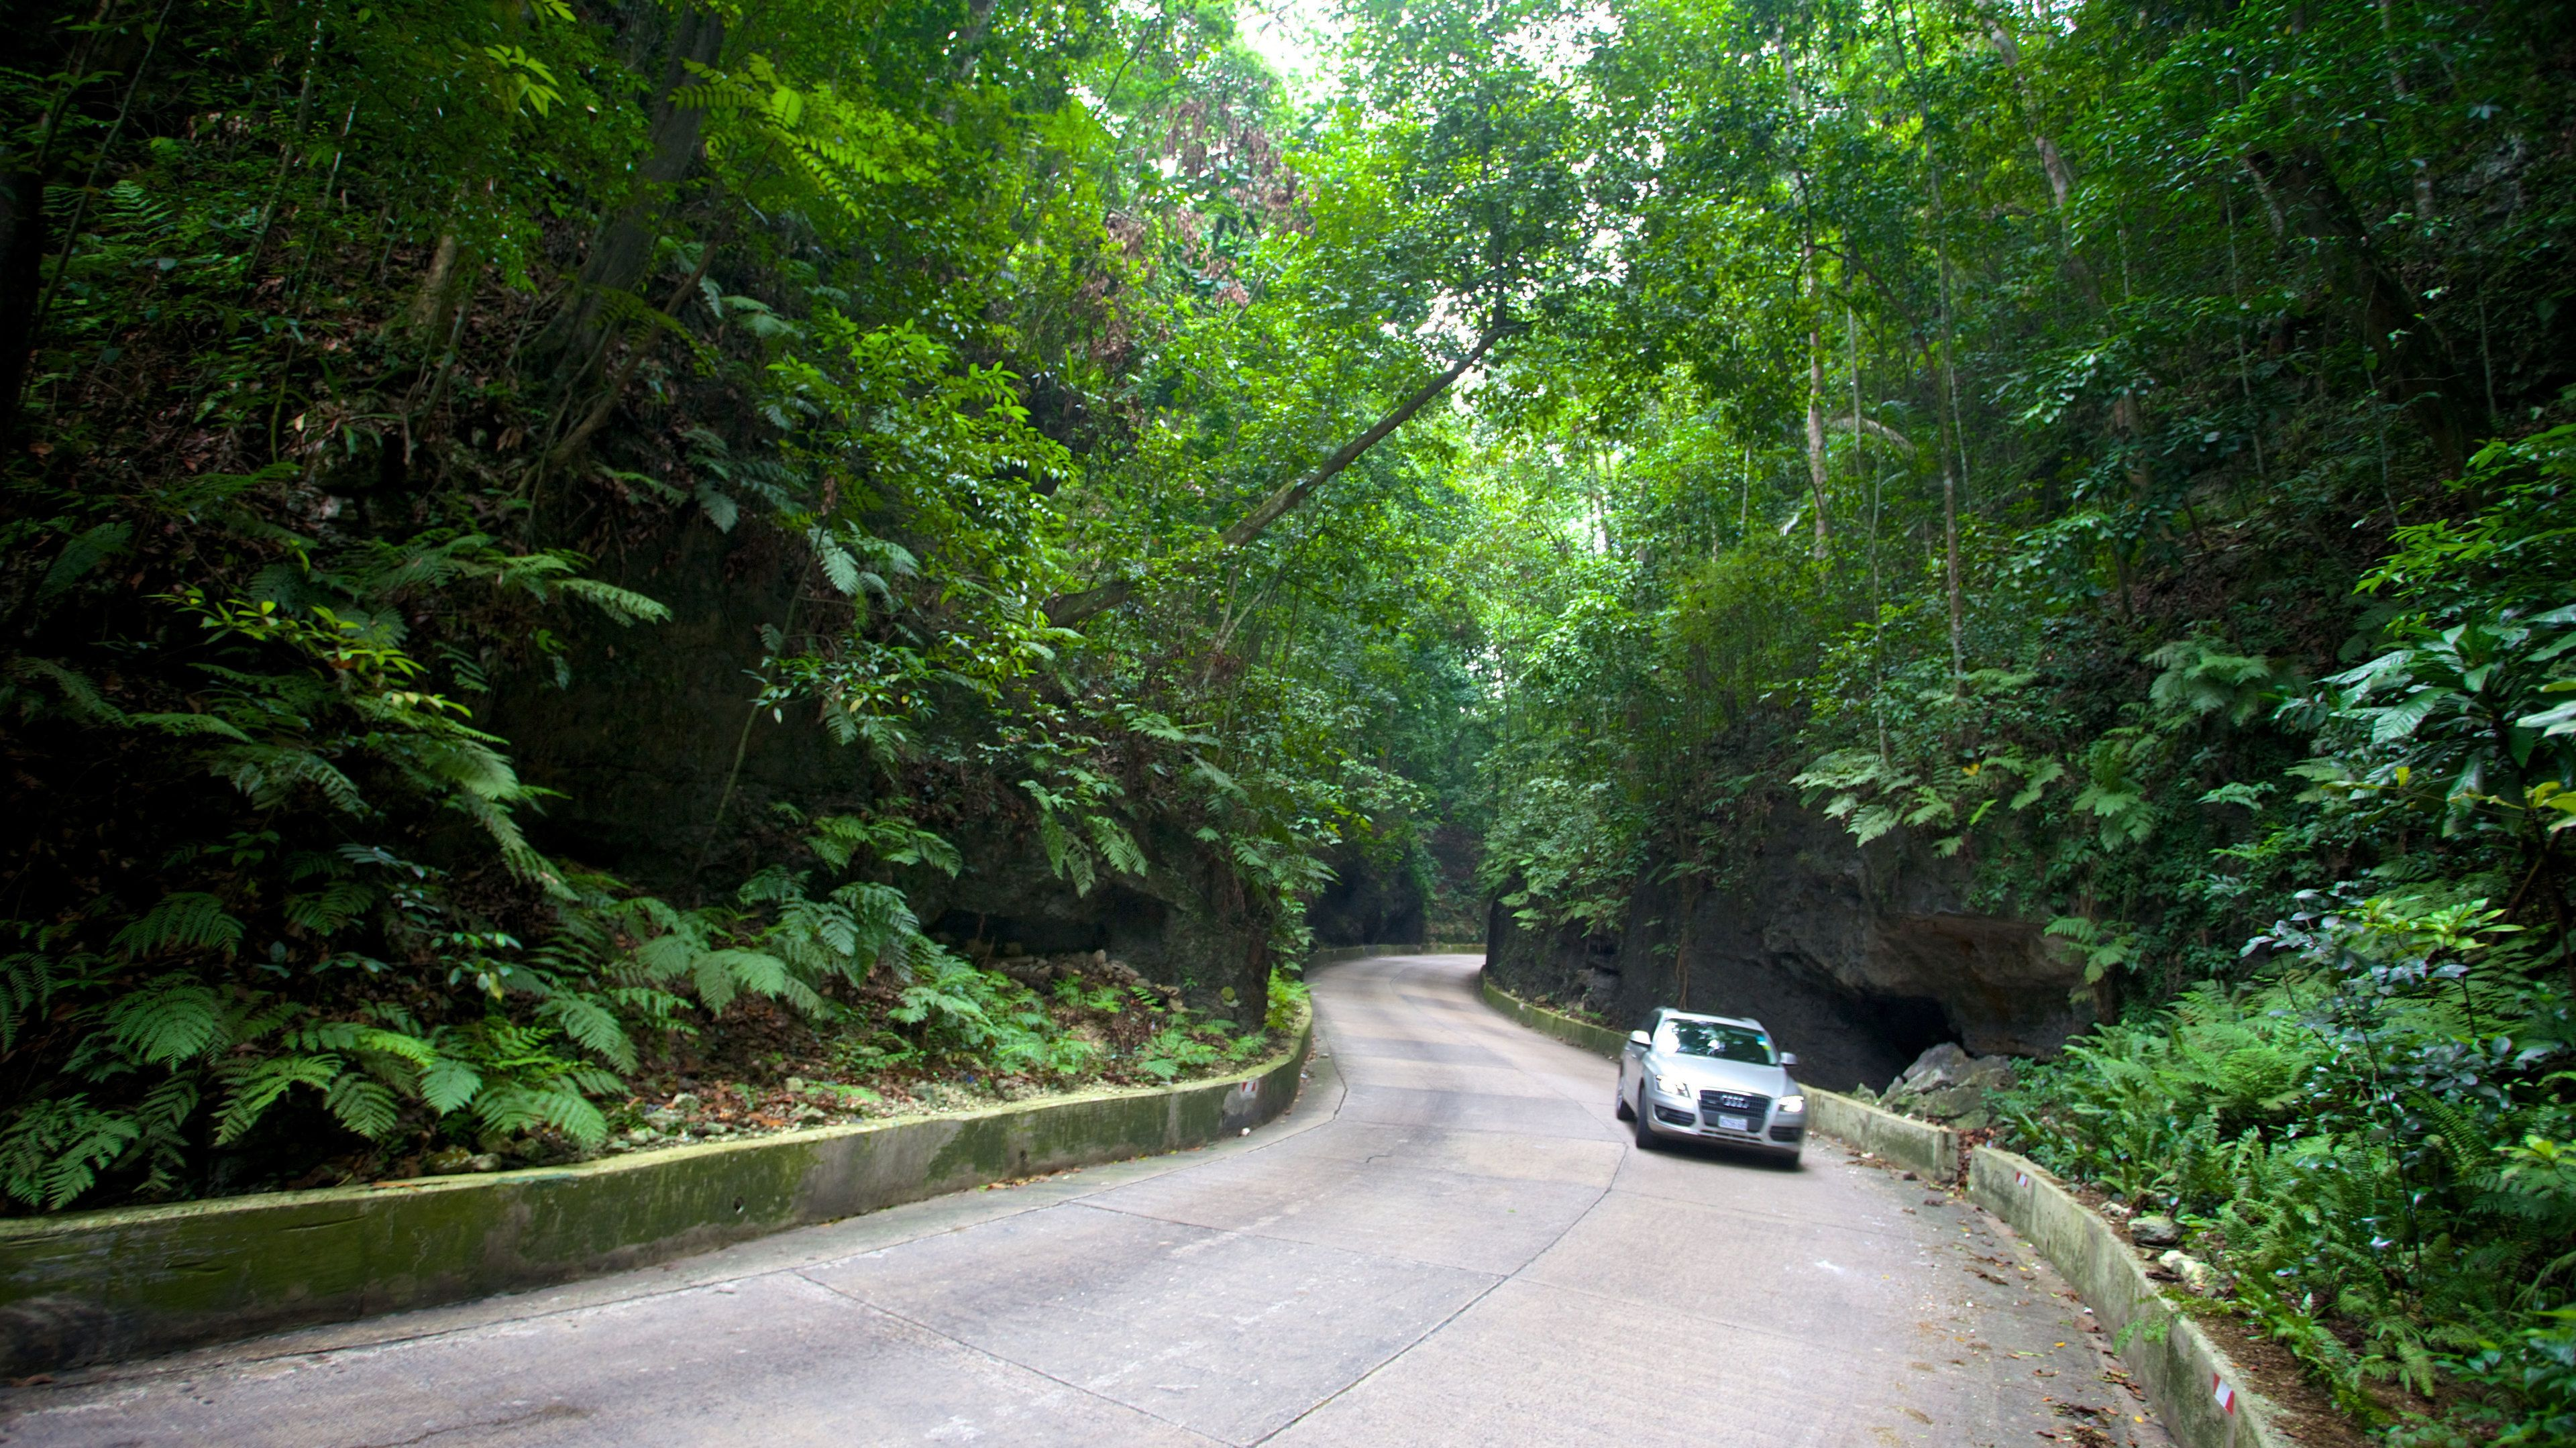 Winding tree-lined road in Fern Gully, Jamaica